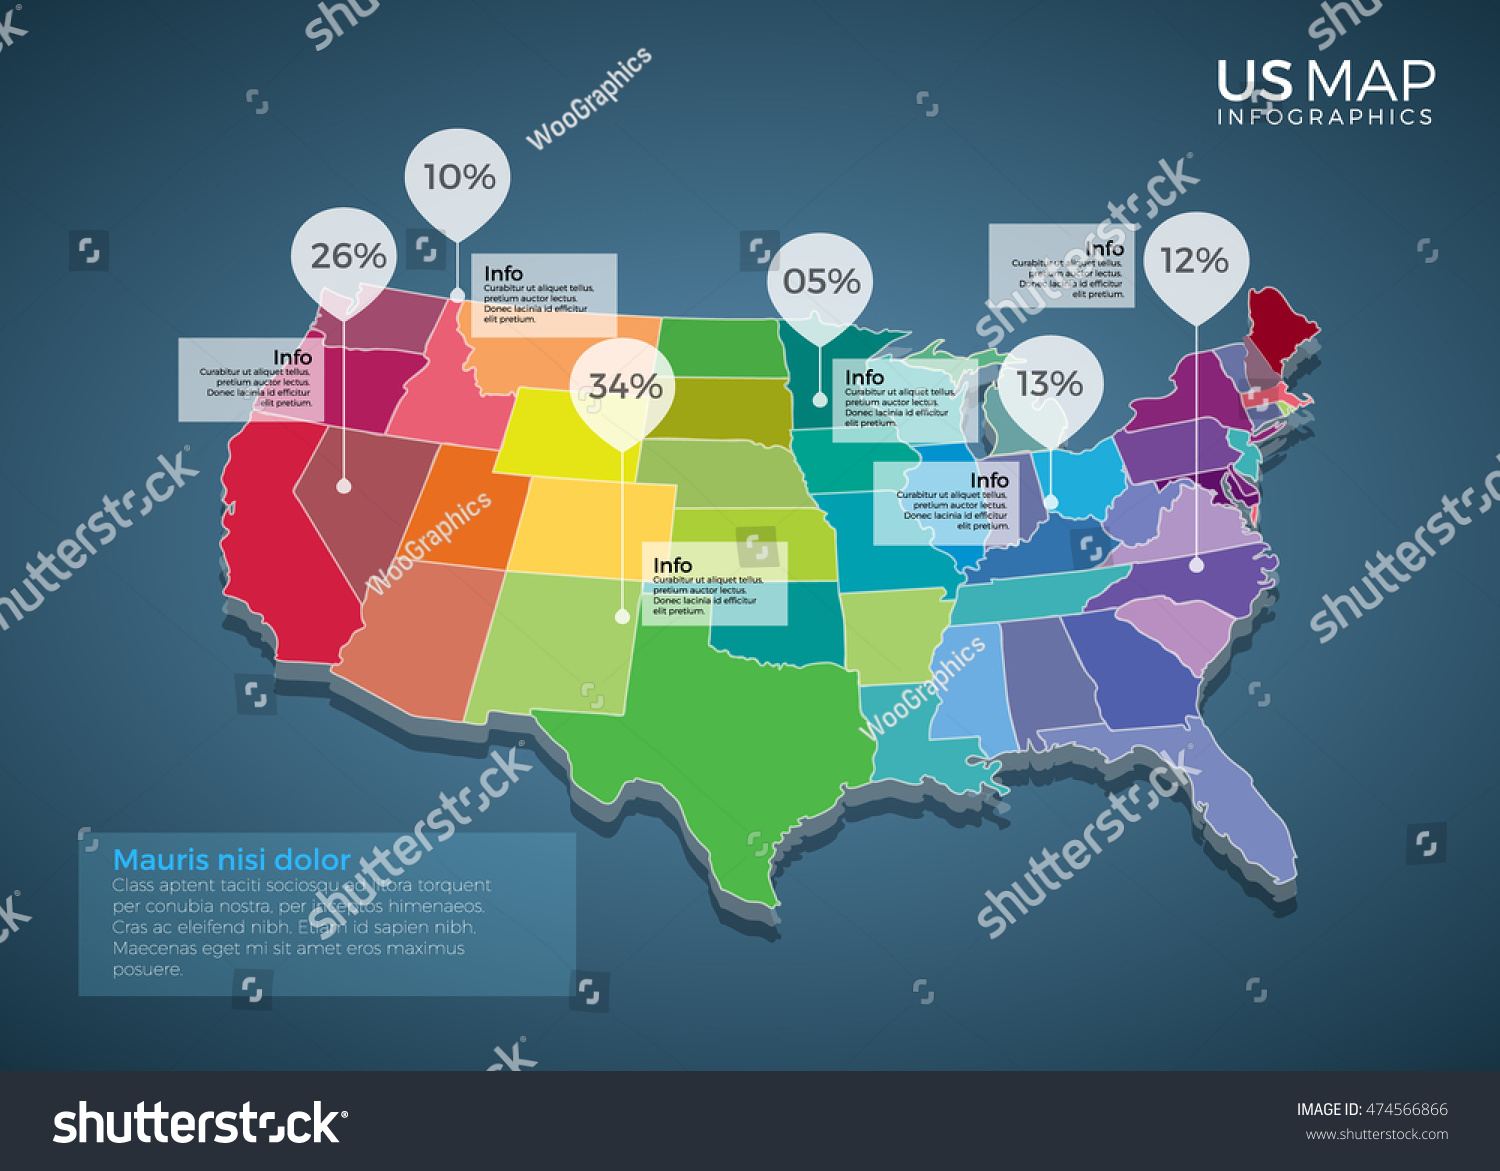 Us Map Infographics Design Vector Template Stock Vector - Create a us map graph